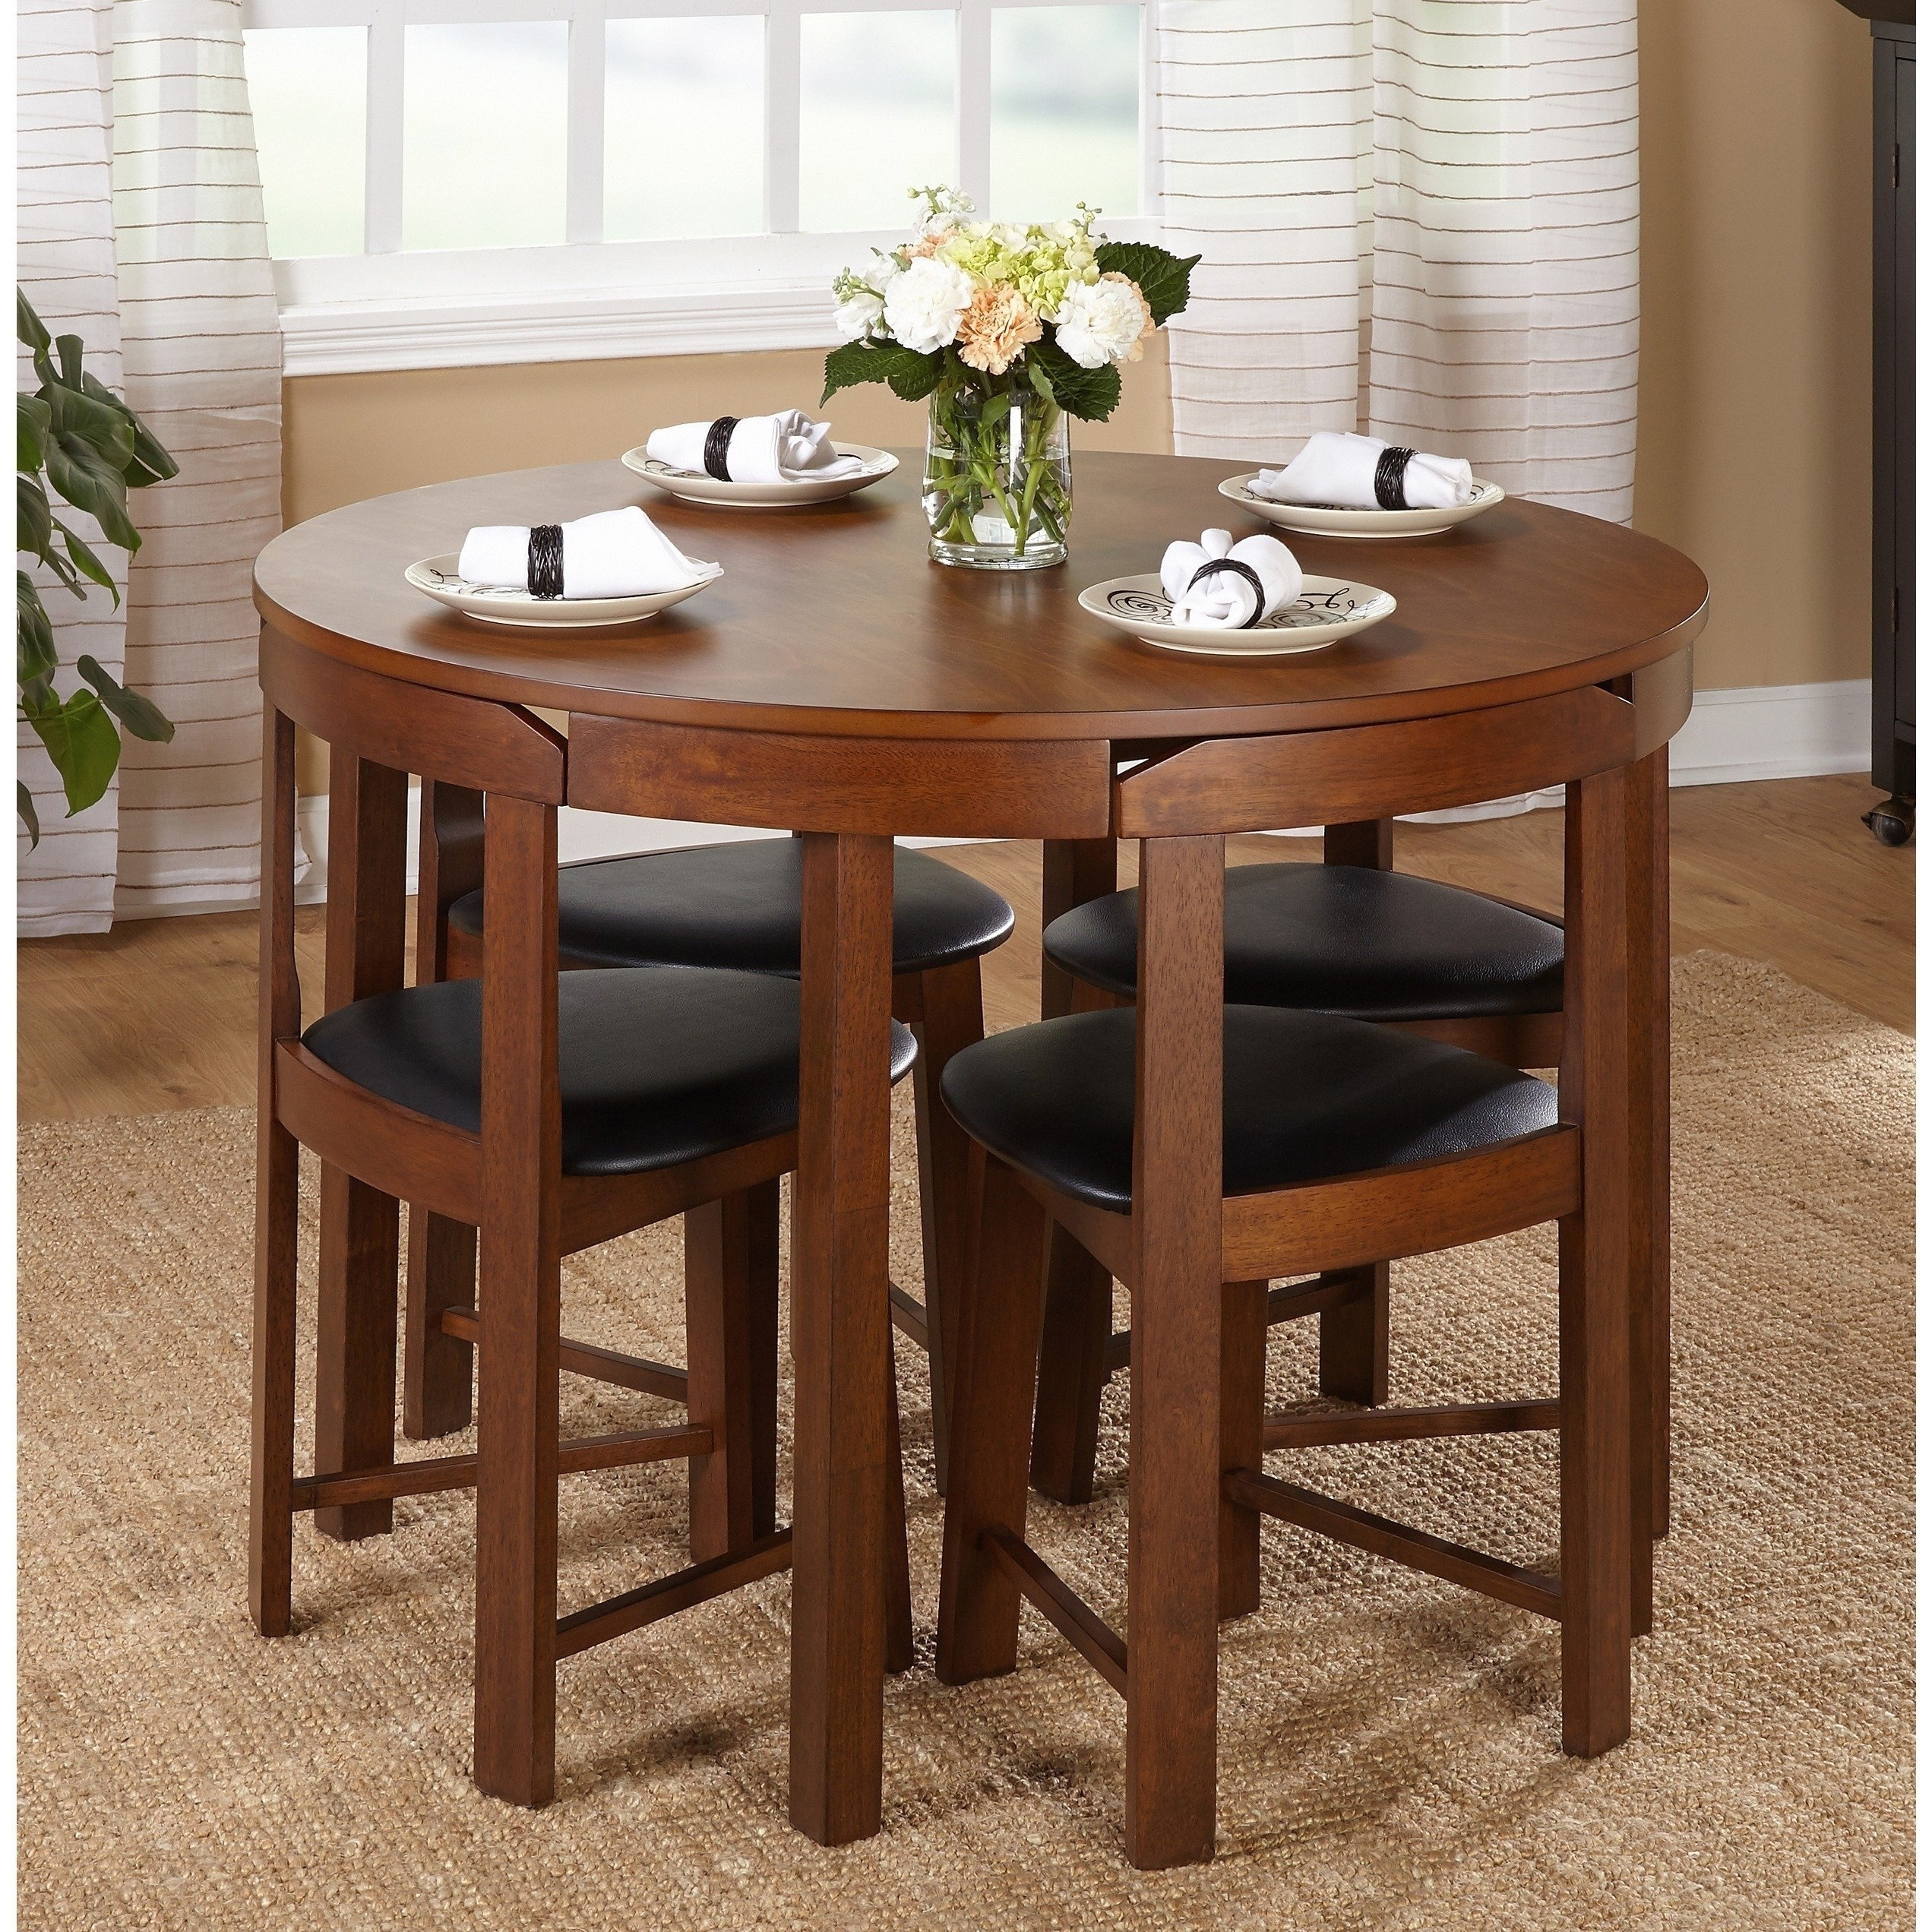 Most Popular Compact Dining Tables And Chairs Within Simple Living 5 Piece Tobey Compact Round Dining Set Room Chairs (View 2 of 25)